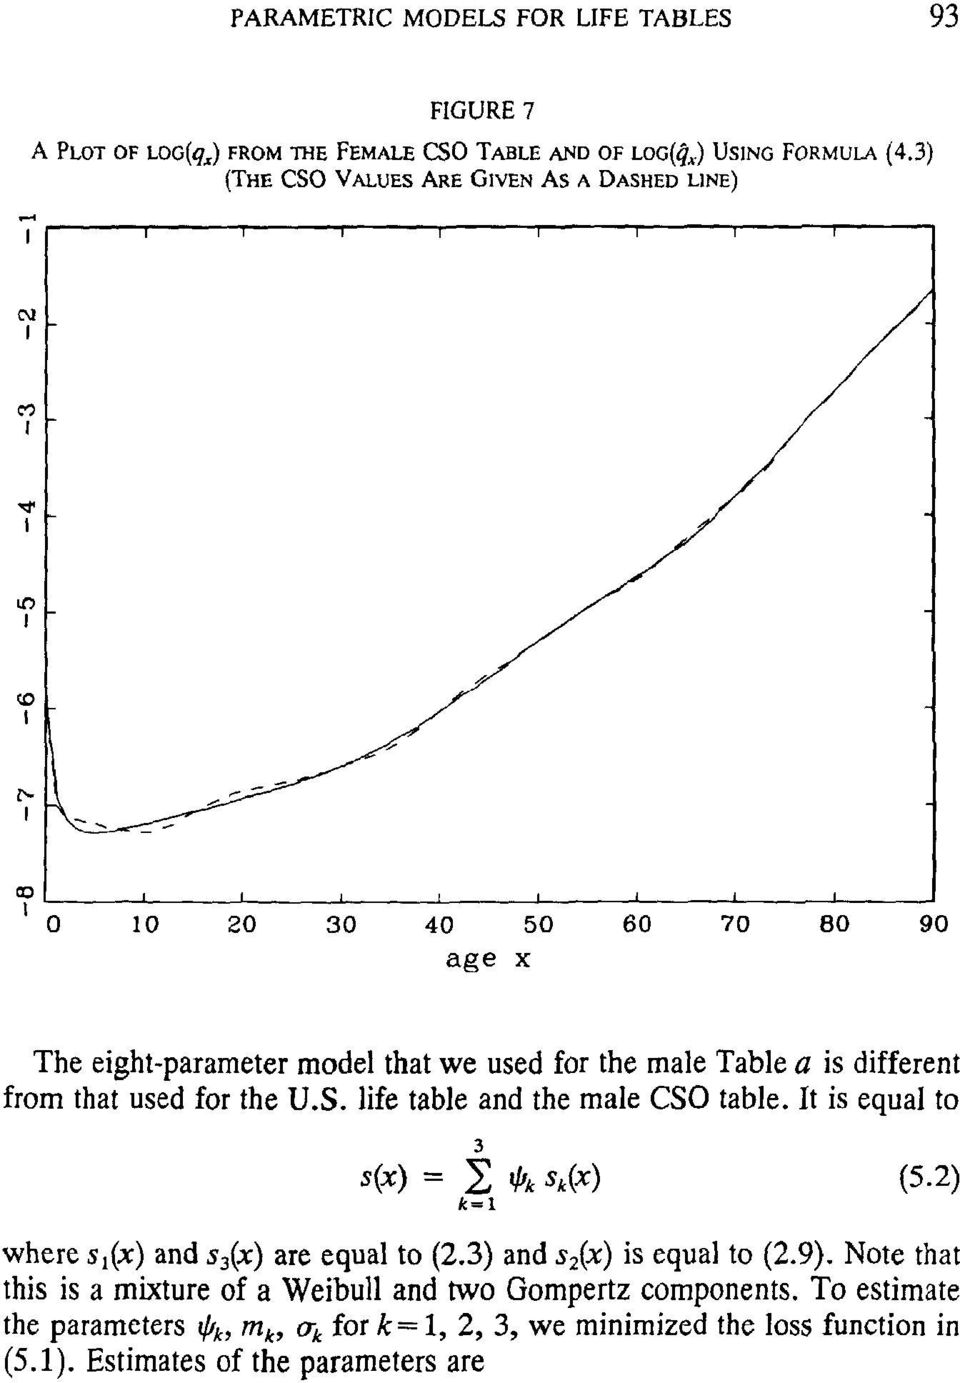 0 10 20 30 40 50 60 70 80 90 age x The eight-parameter model that we used for the male Table a is different from that used for the U.S. life table and the male CSO table.